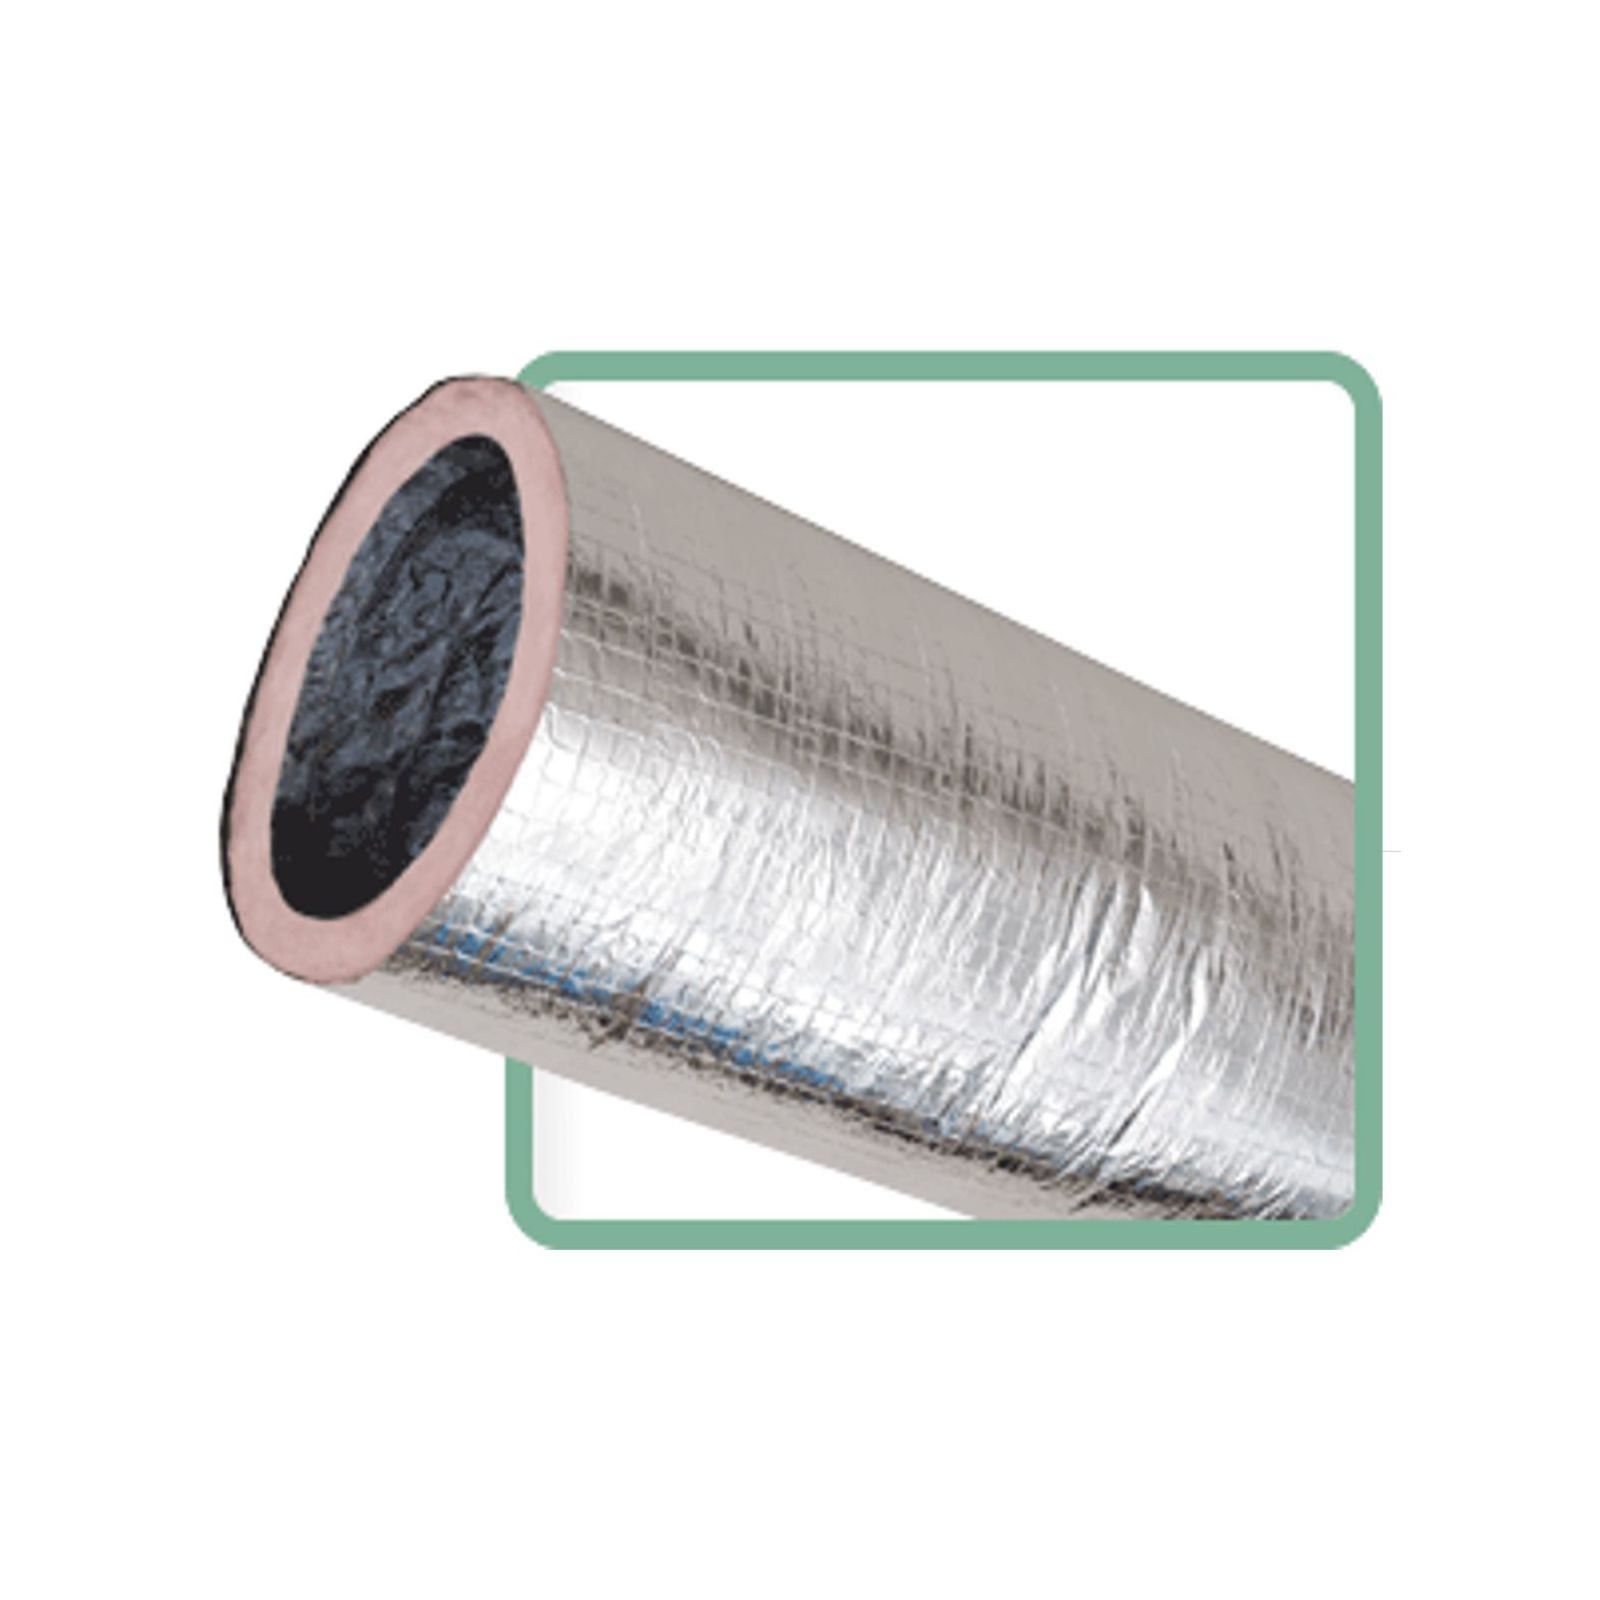 "Thermaflex 056309000004 - KM Silver Flex-Vent Insulated Flexible Air Duct, R8, 9"" X 50' Box"